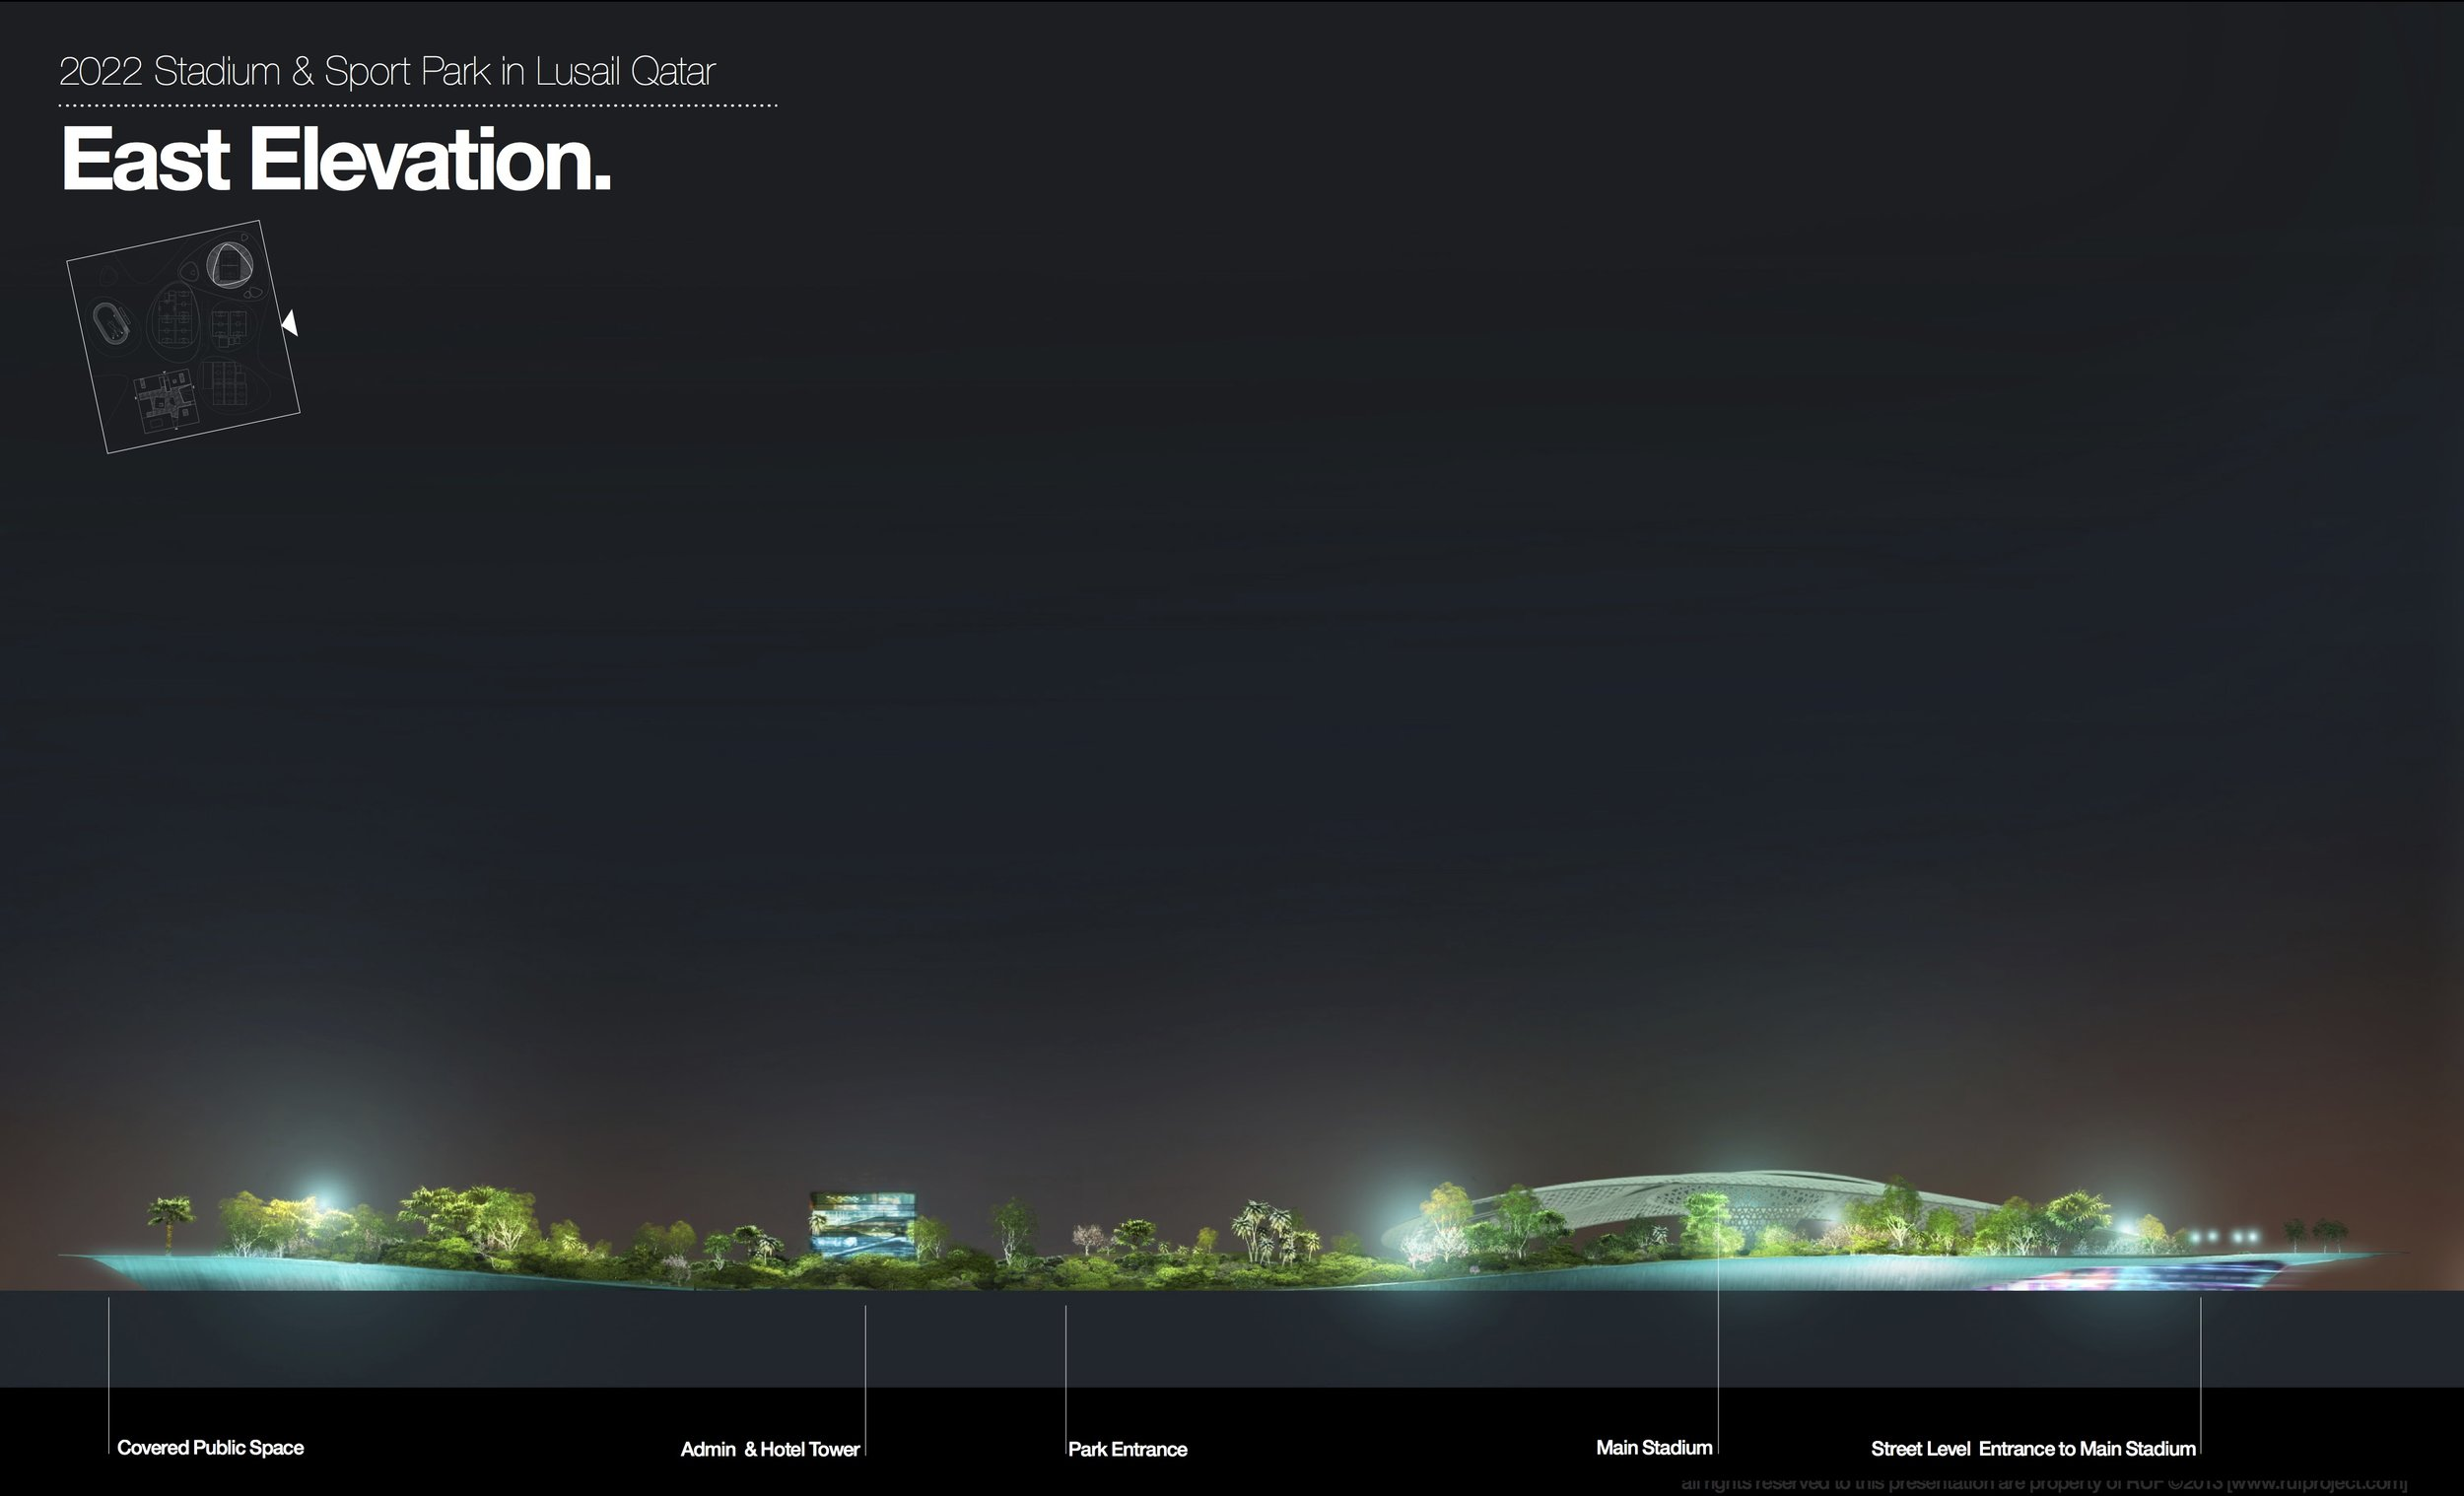 130730 Qatar_Main_Stadium_Concept_east elevation 18.jpg